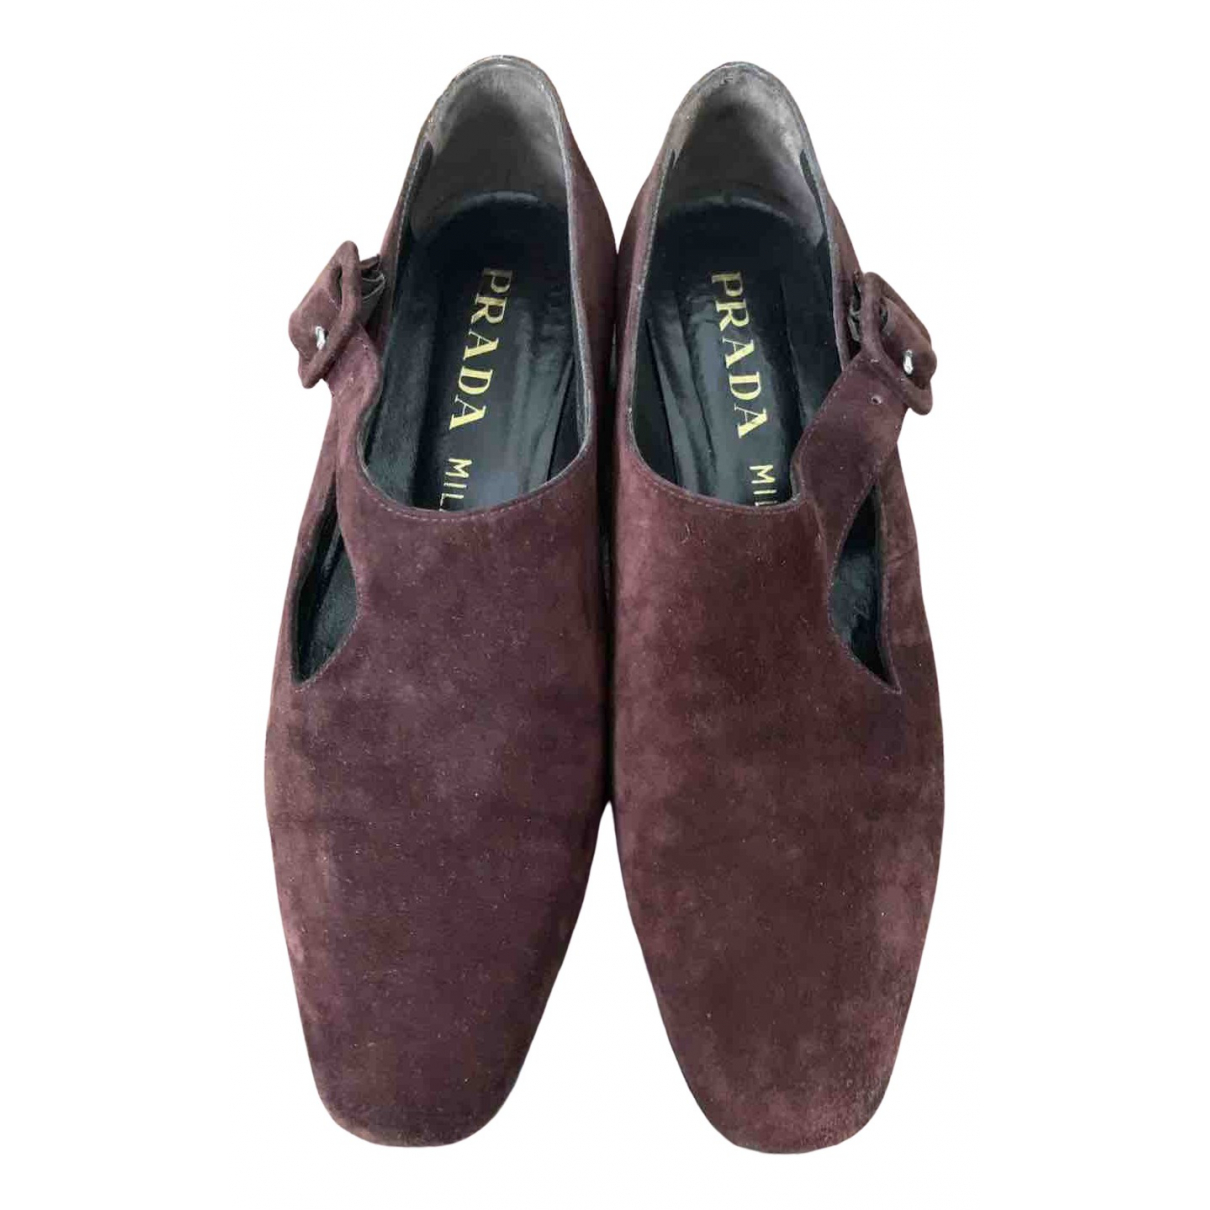 Prada \N Burgundy Suede Flats for Women 37 EU